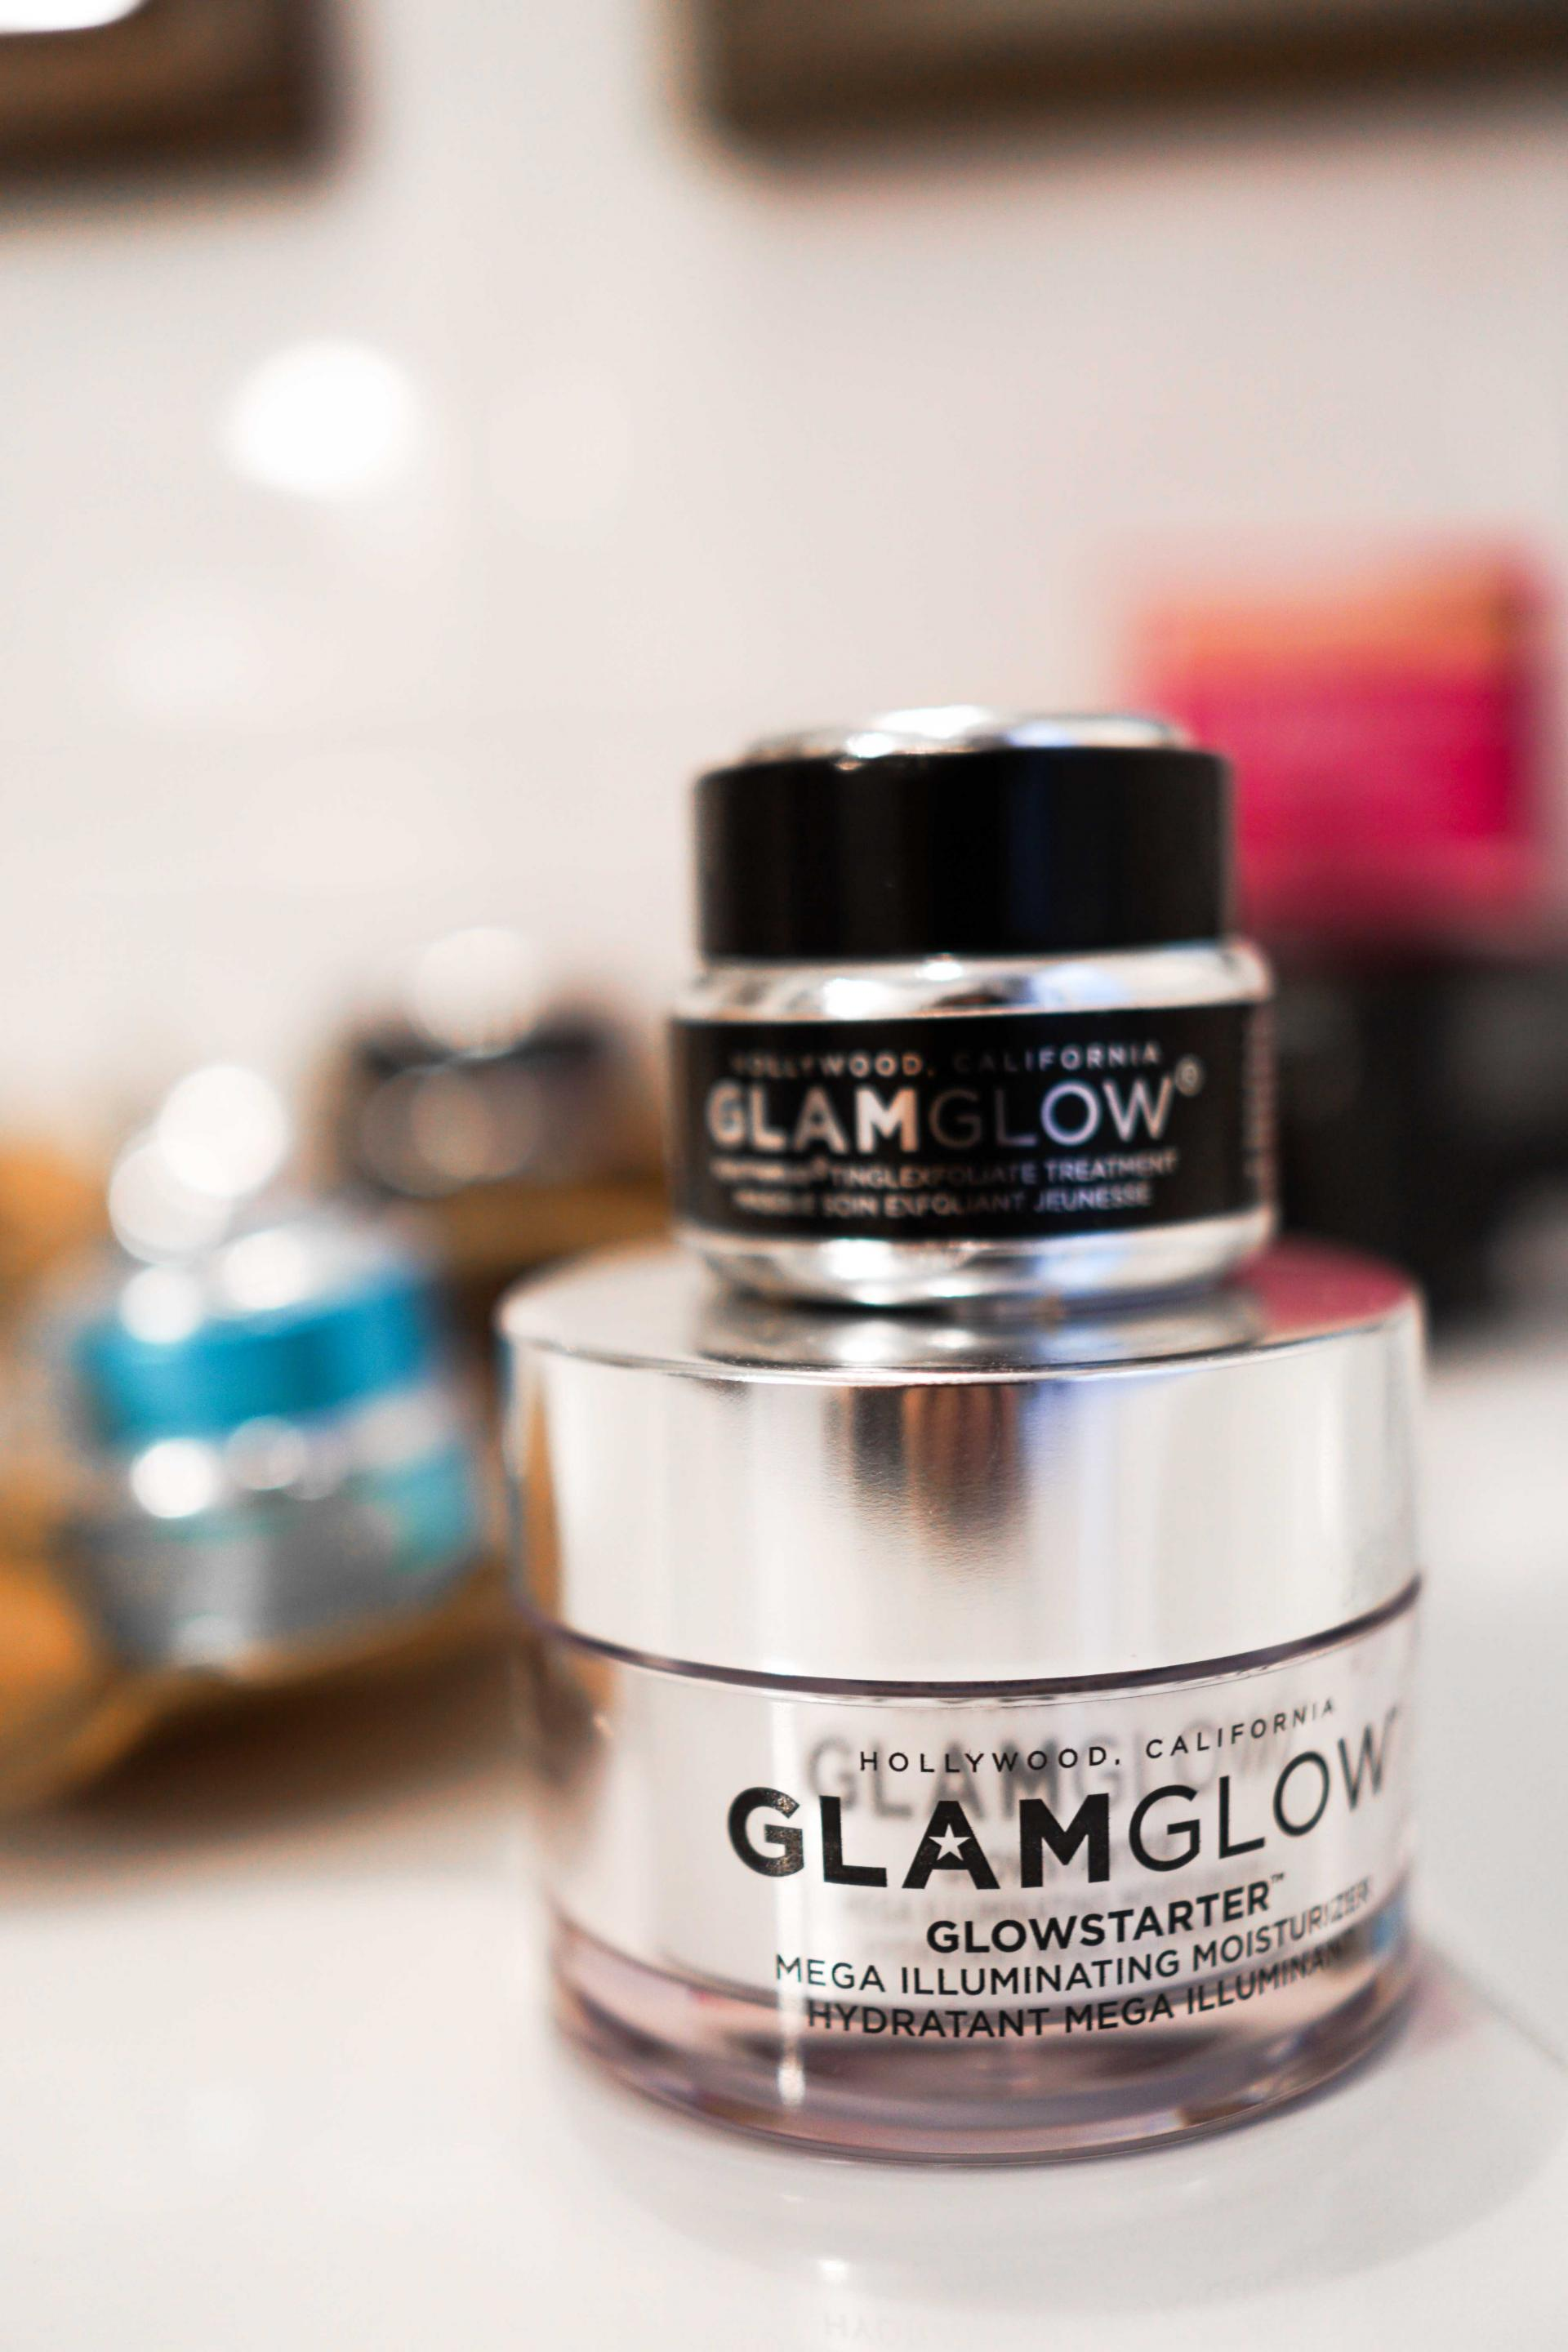 glamglow mini size compared to regular size